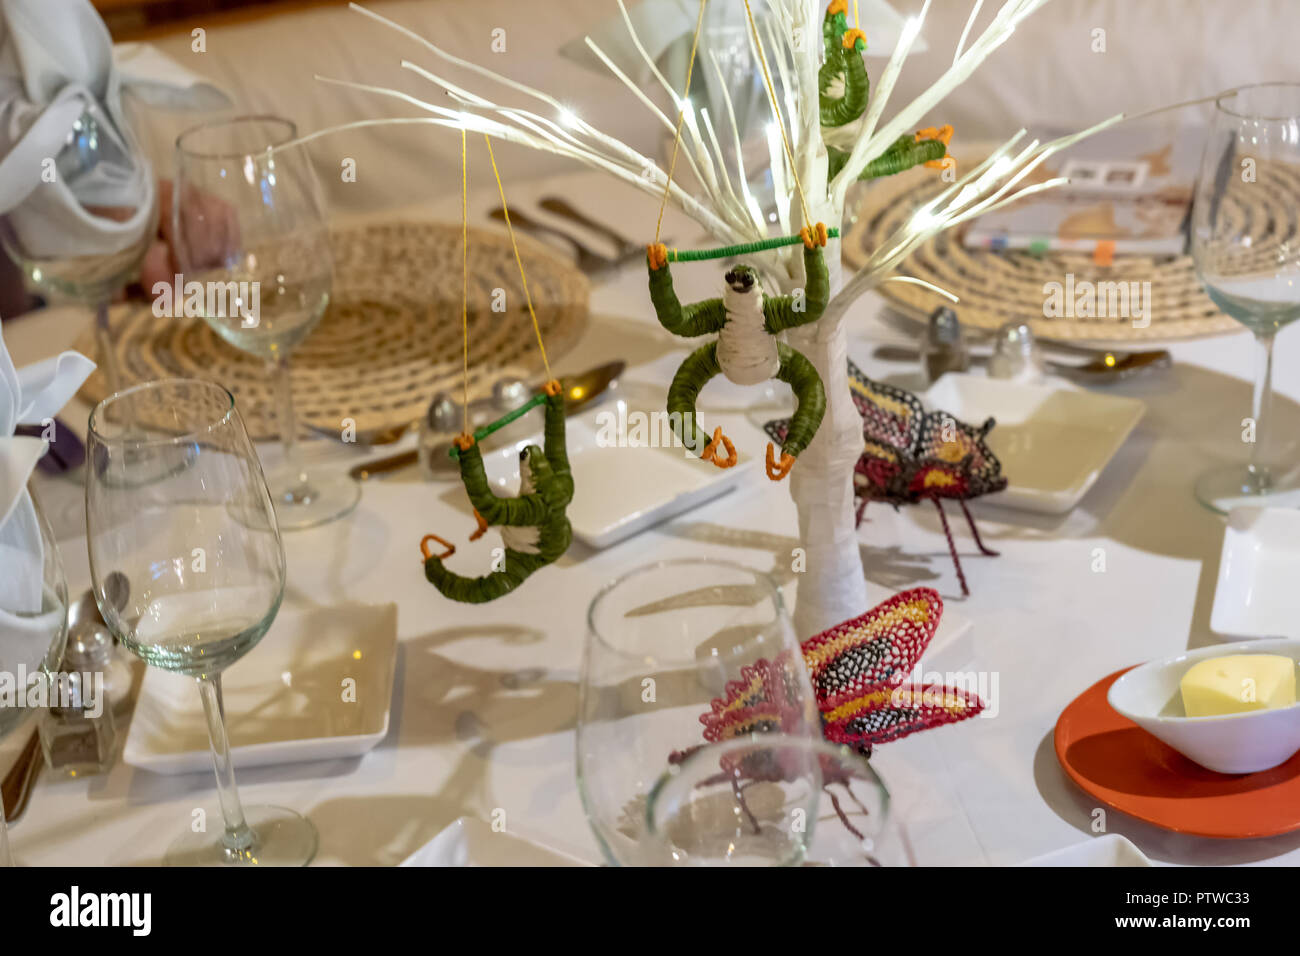 Peru, South America.  Table decorations with handmade sloths and butterflies on a tour boat. Stock Photo